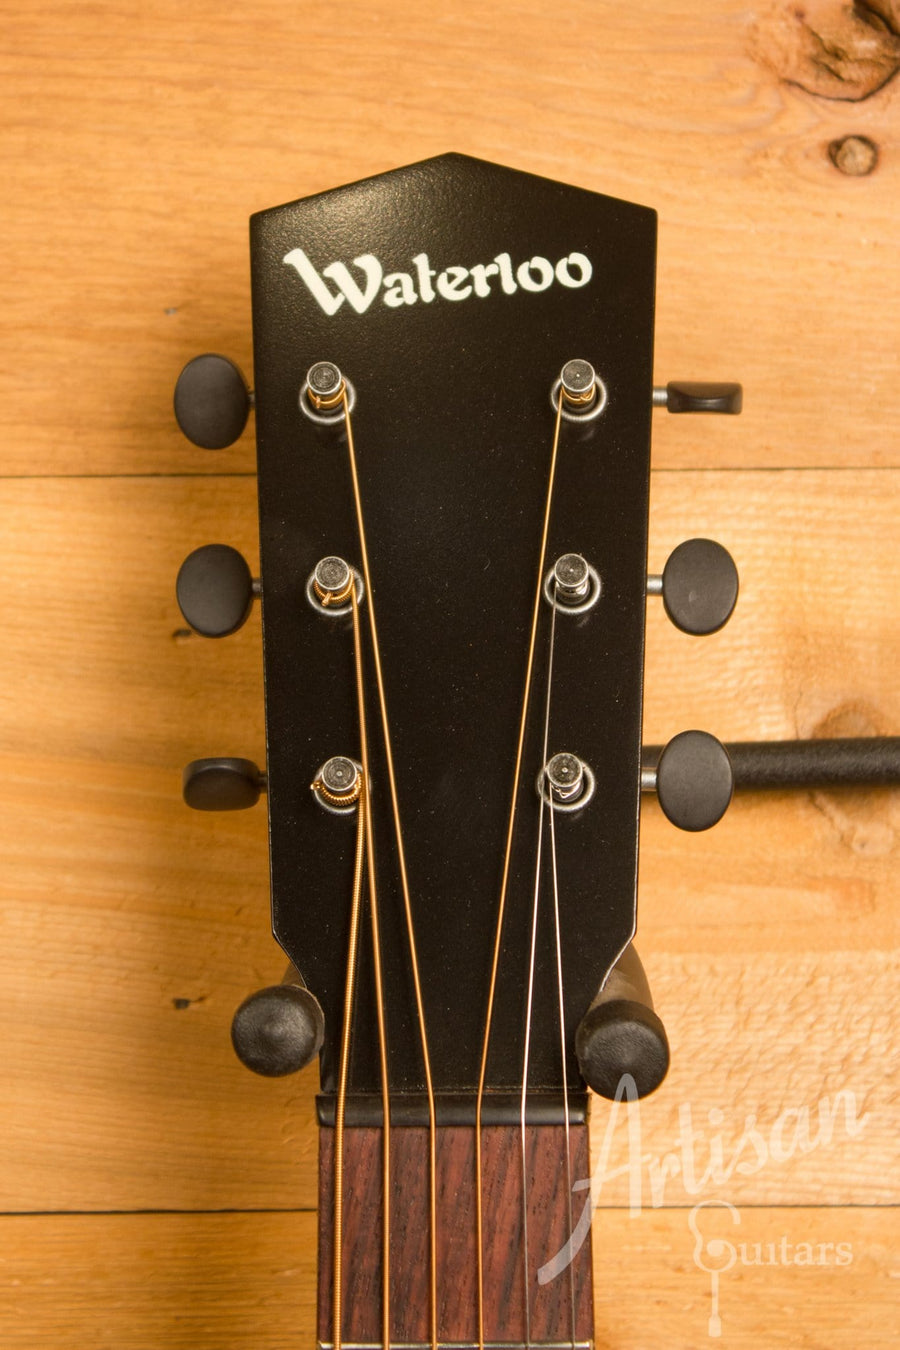 Waterloo WL-14X Guitar with Truss Rod Sunburst Finish and Small Neck Profile ID-10365 - Artisan Guitars